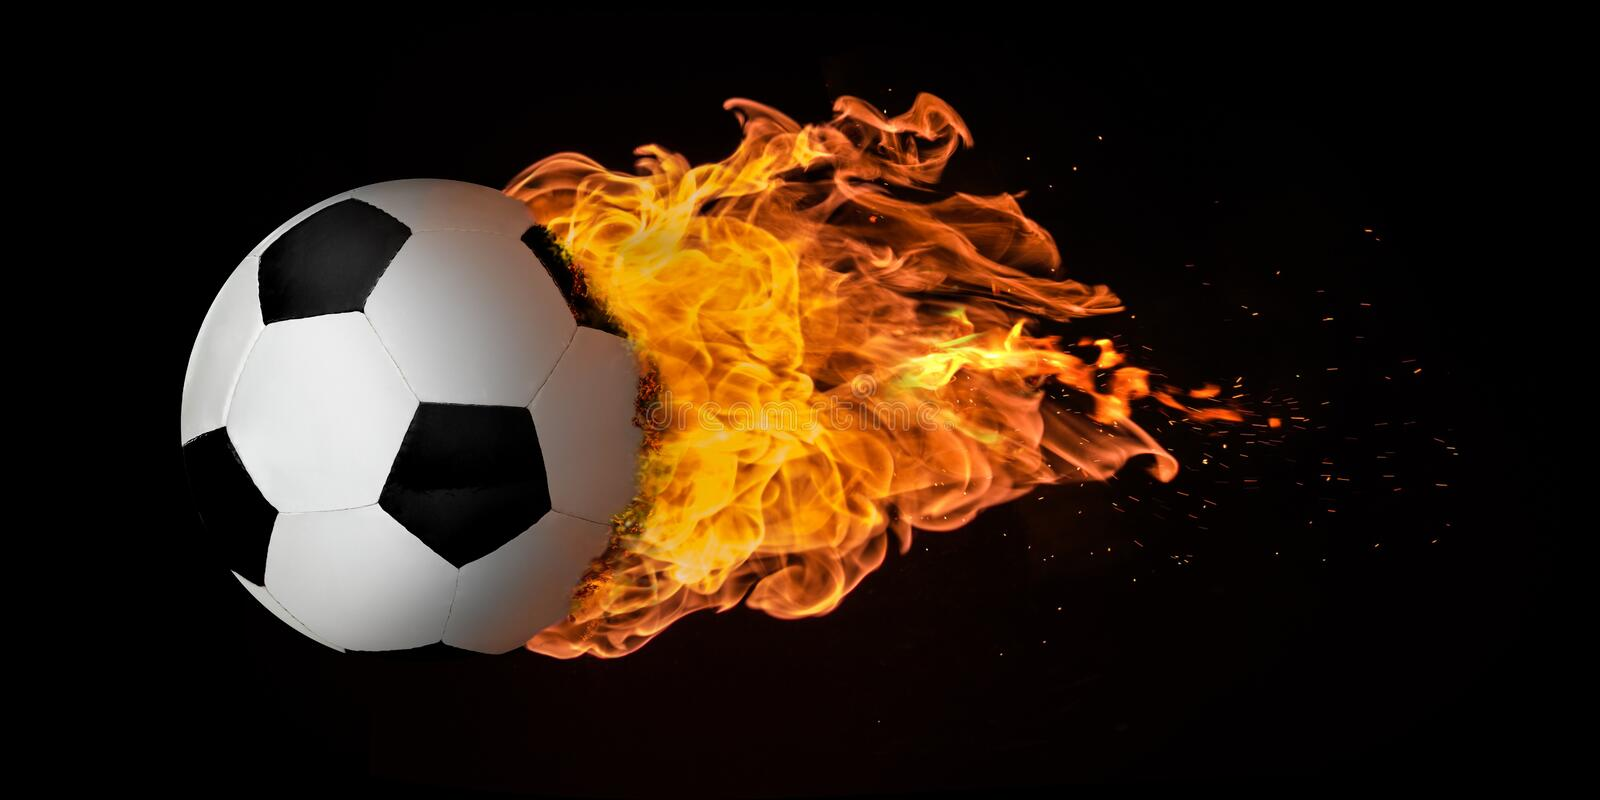 Flying Football or Soccer Ball Engulfed in Flames royalty free stock photo